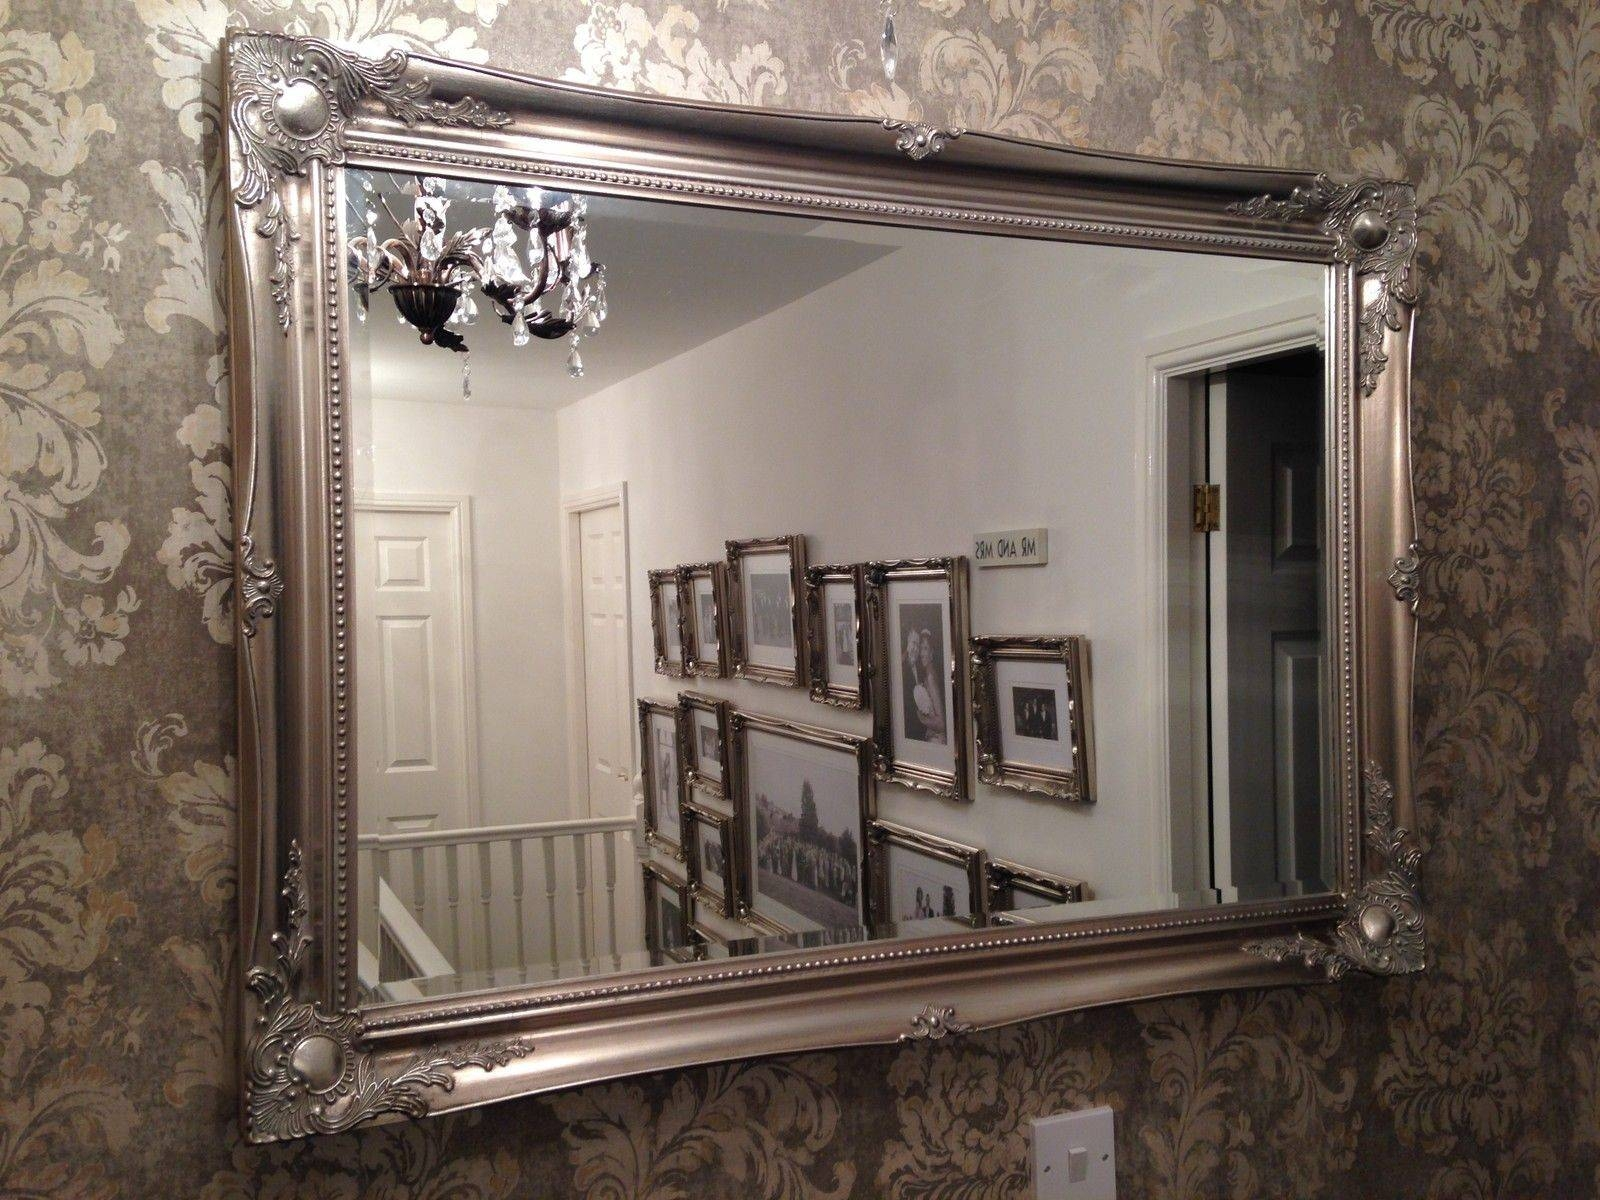 Silver Mirrors with regard to Antique Ornate Mirrors (Image 22 of 25)